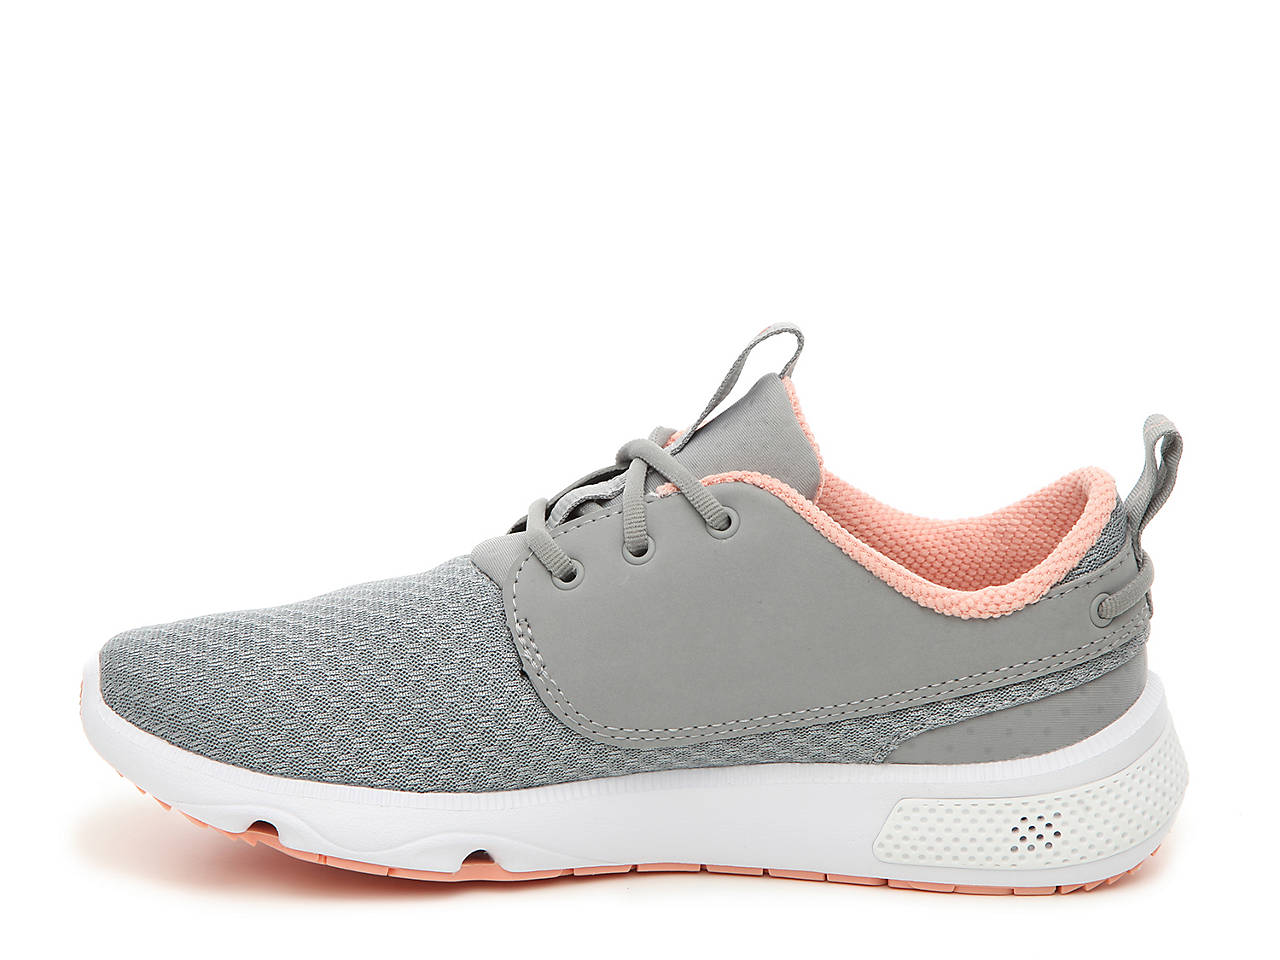 bb7cafdaae11 Sperry Top-Sider Fathom Sneaker Women s Shoes